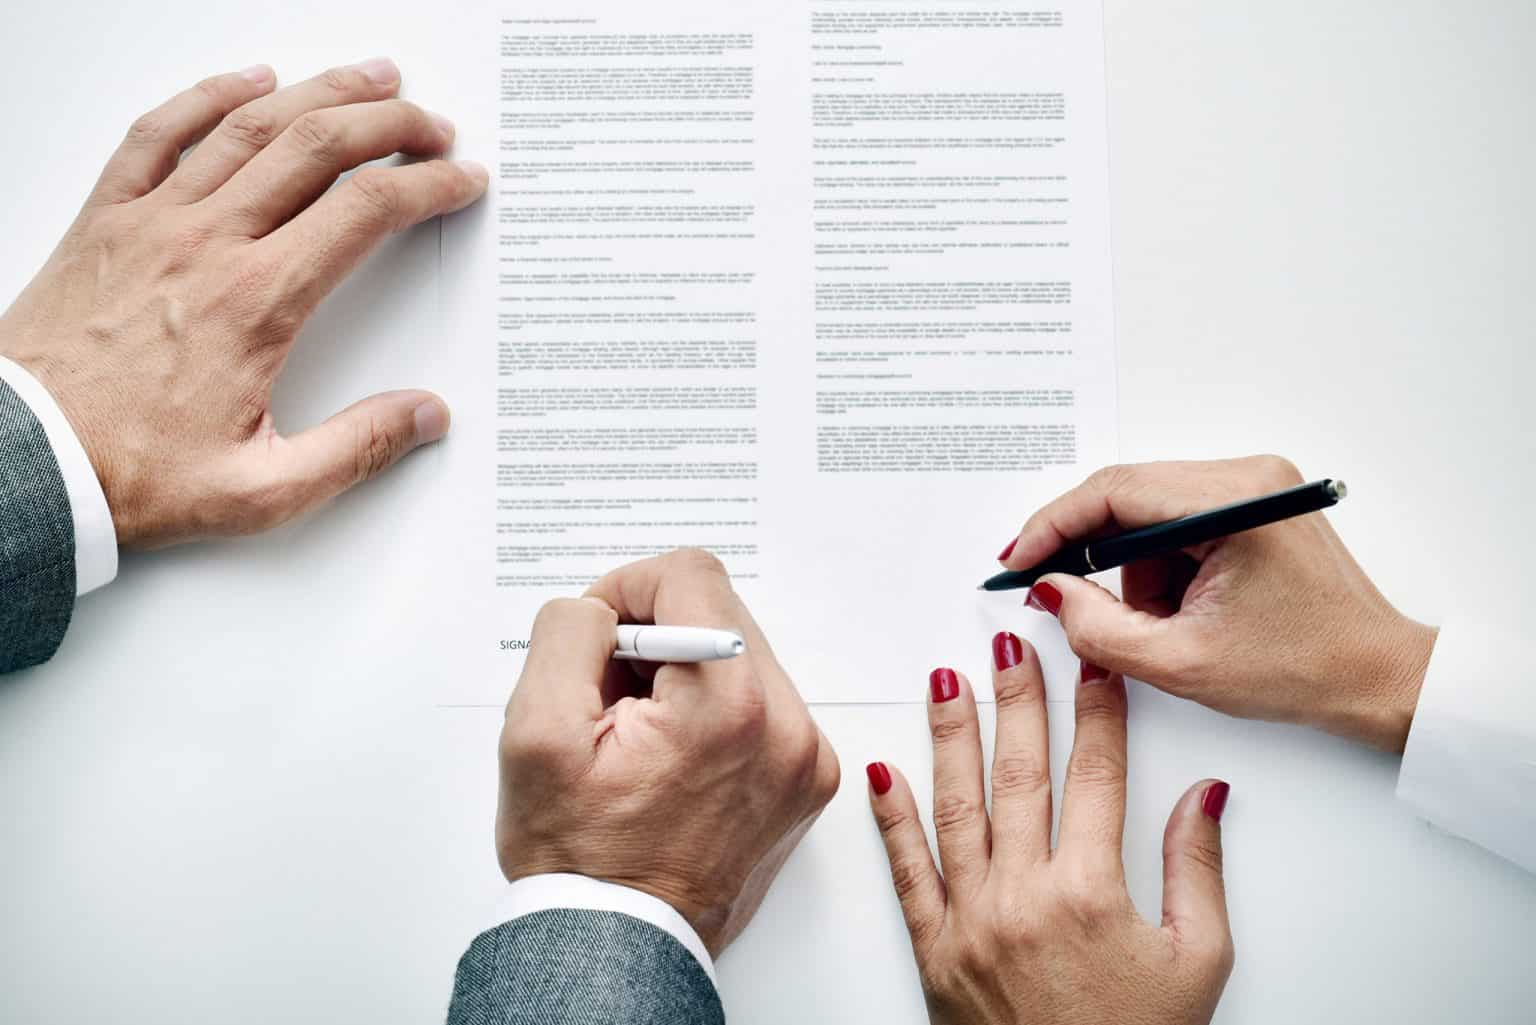 Prenuptial Agreements, Relationship Agreements, Financial Agreements – what's the difference, and why should a couple consider getting one??